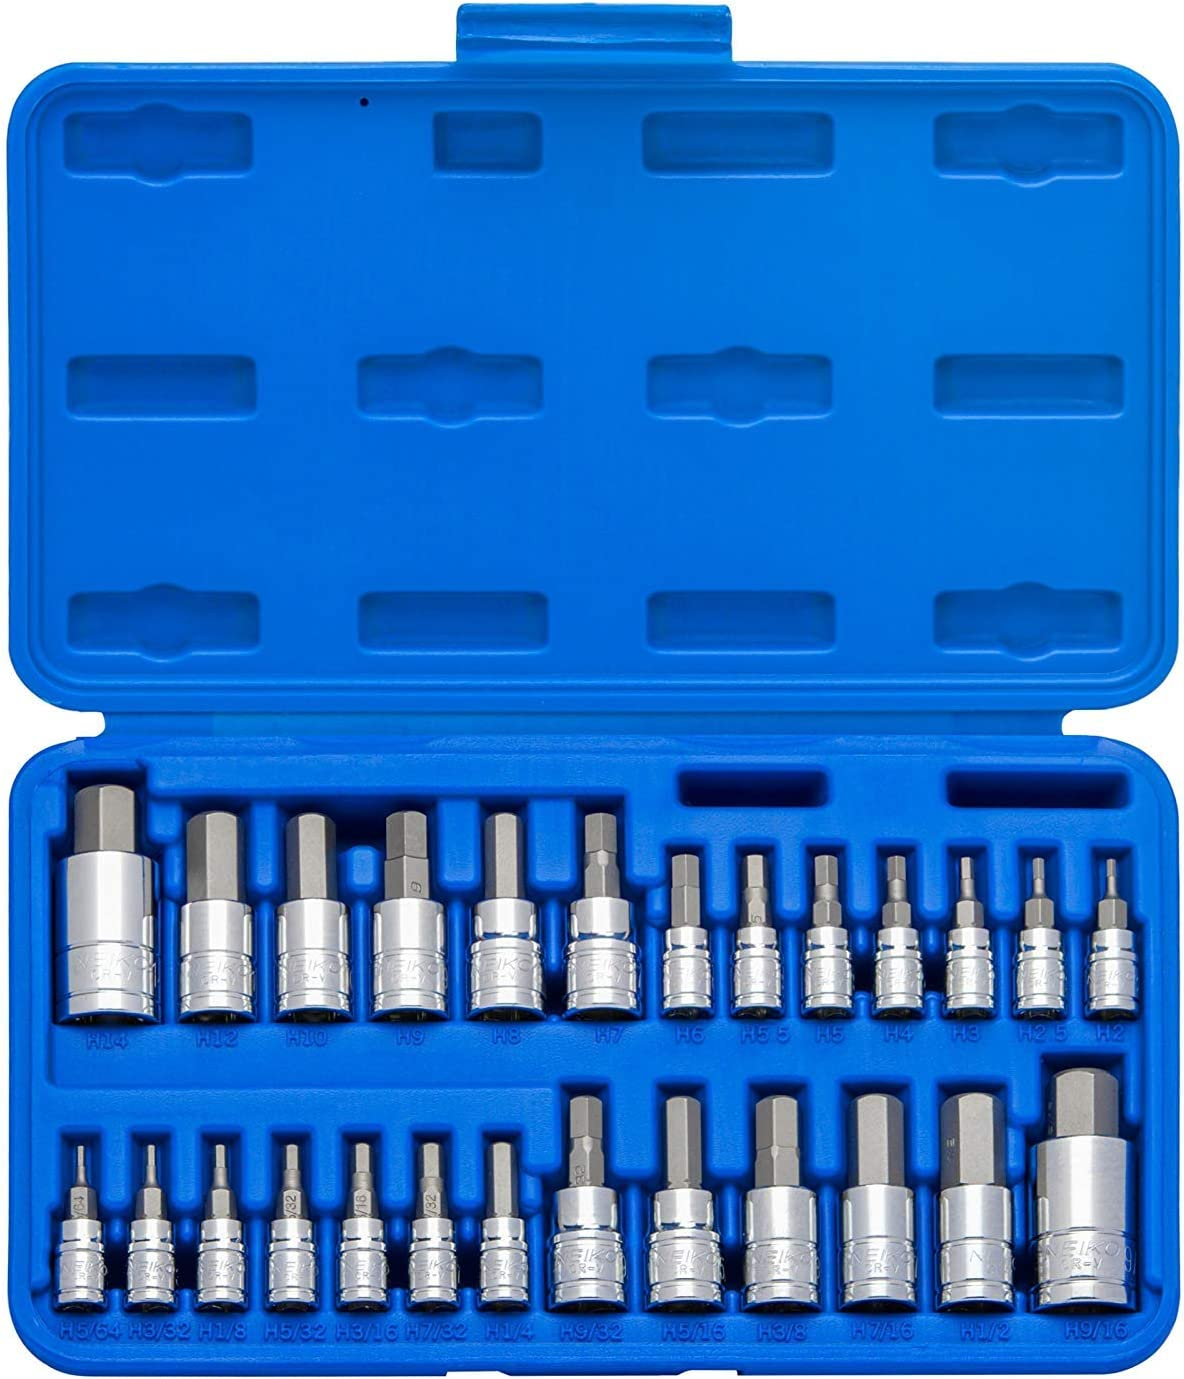 Neiko 01144A Tamper-Proof Hex Bit Socket Set